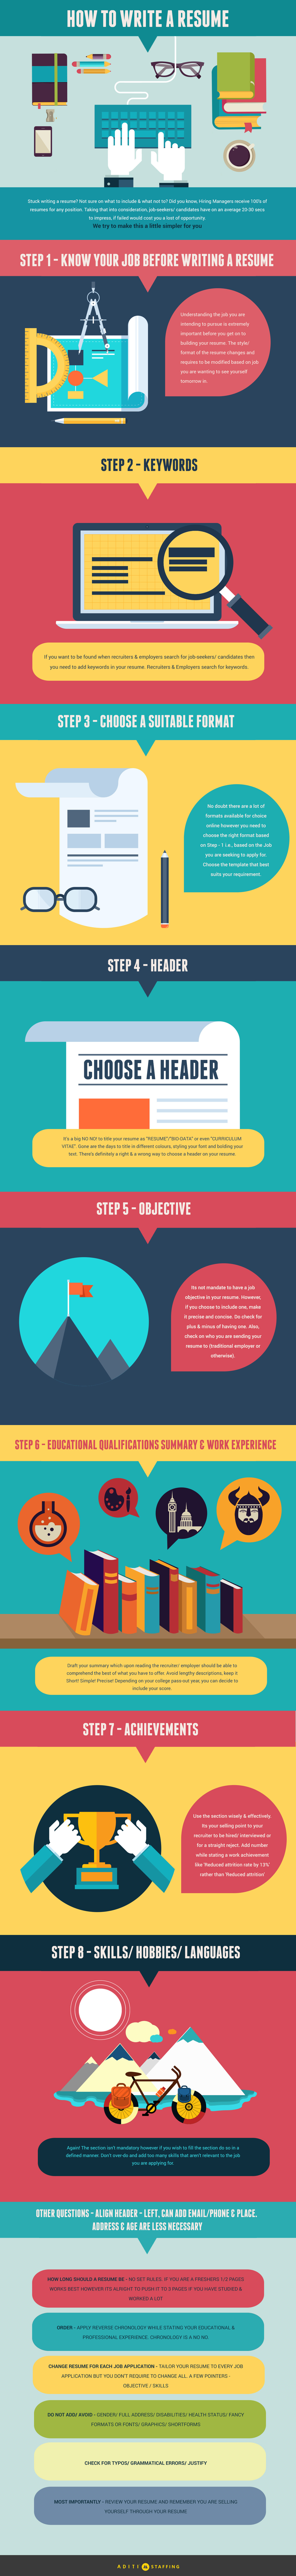 Infographic: How To Write a Resume